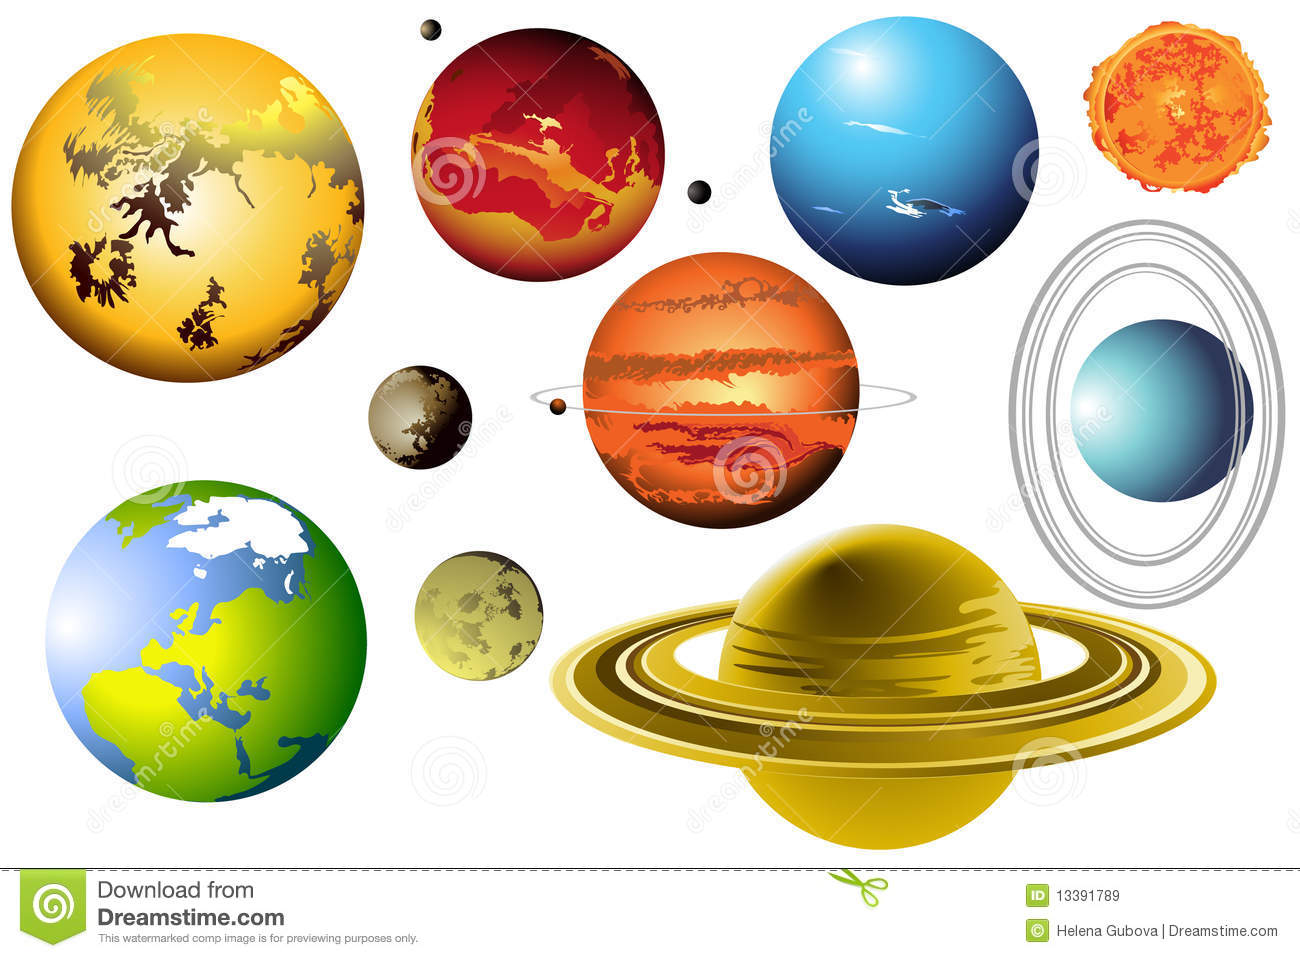 Planetary system clipart 20 free Cliparts | Download ...